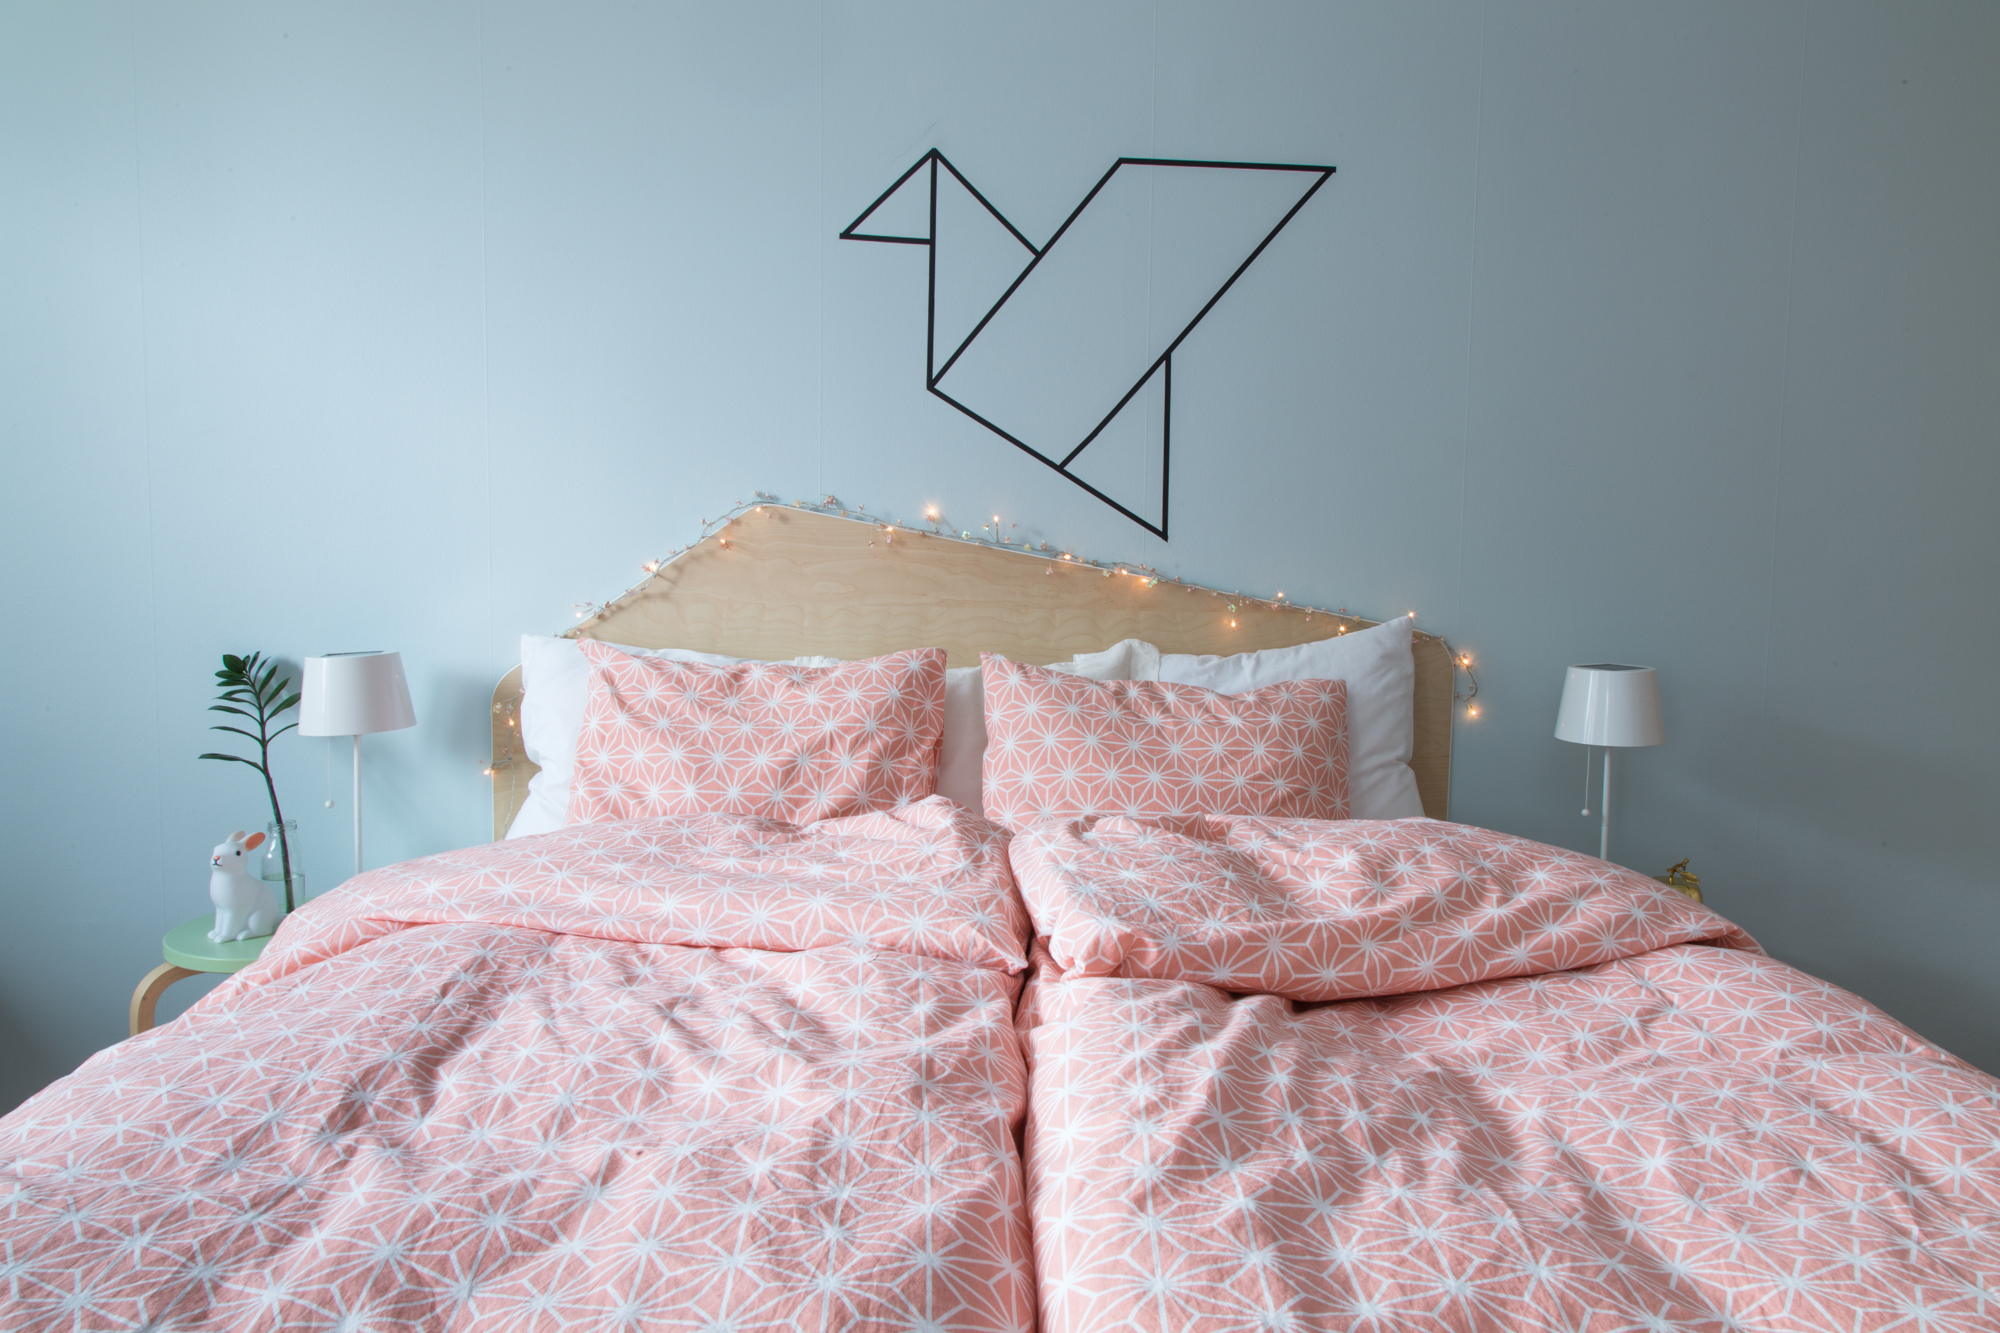 DIY Headboard - Dnilva